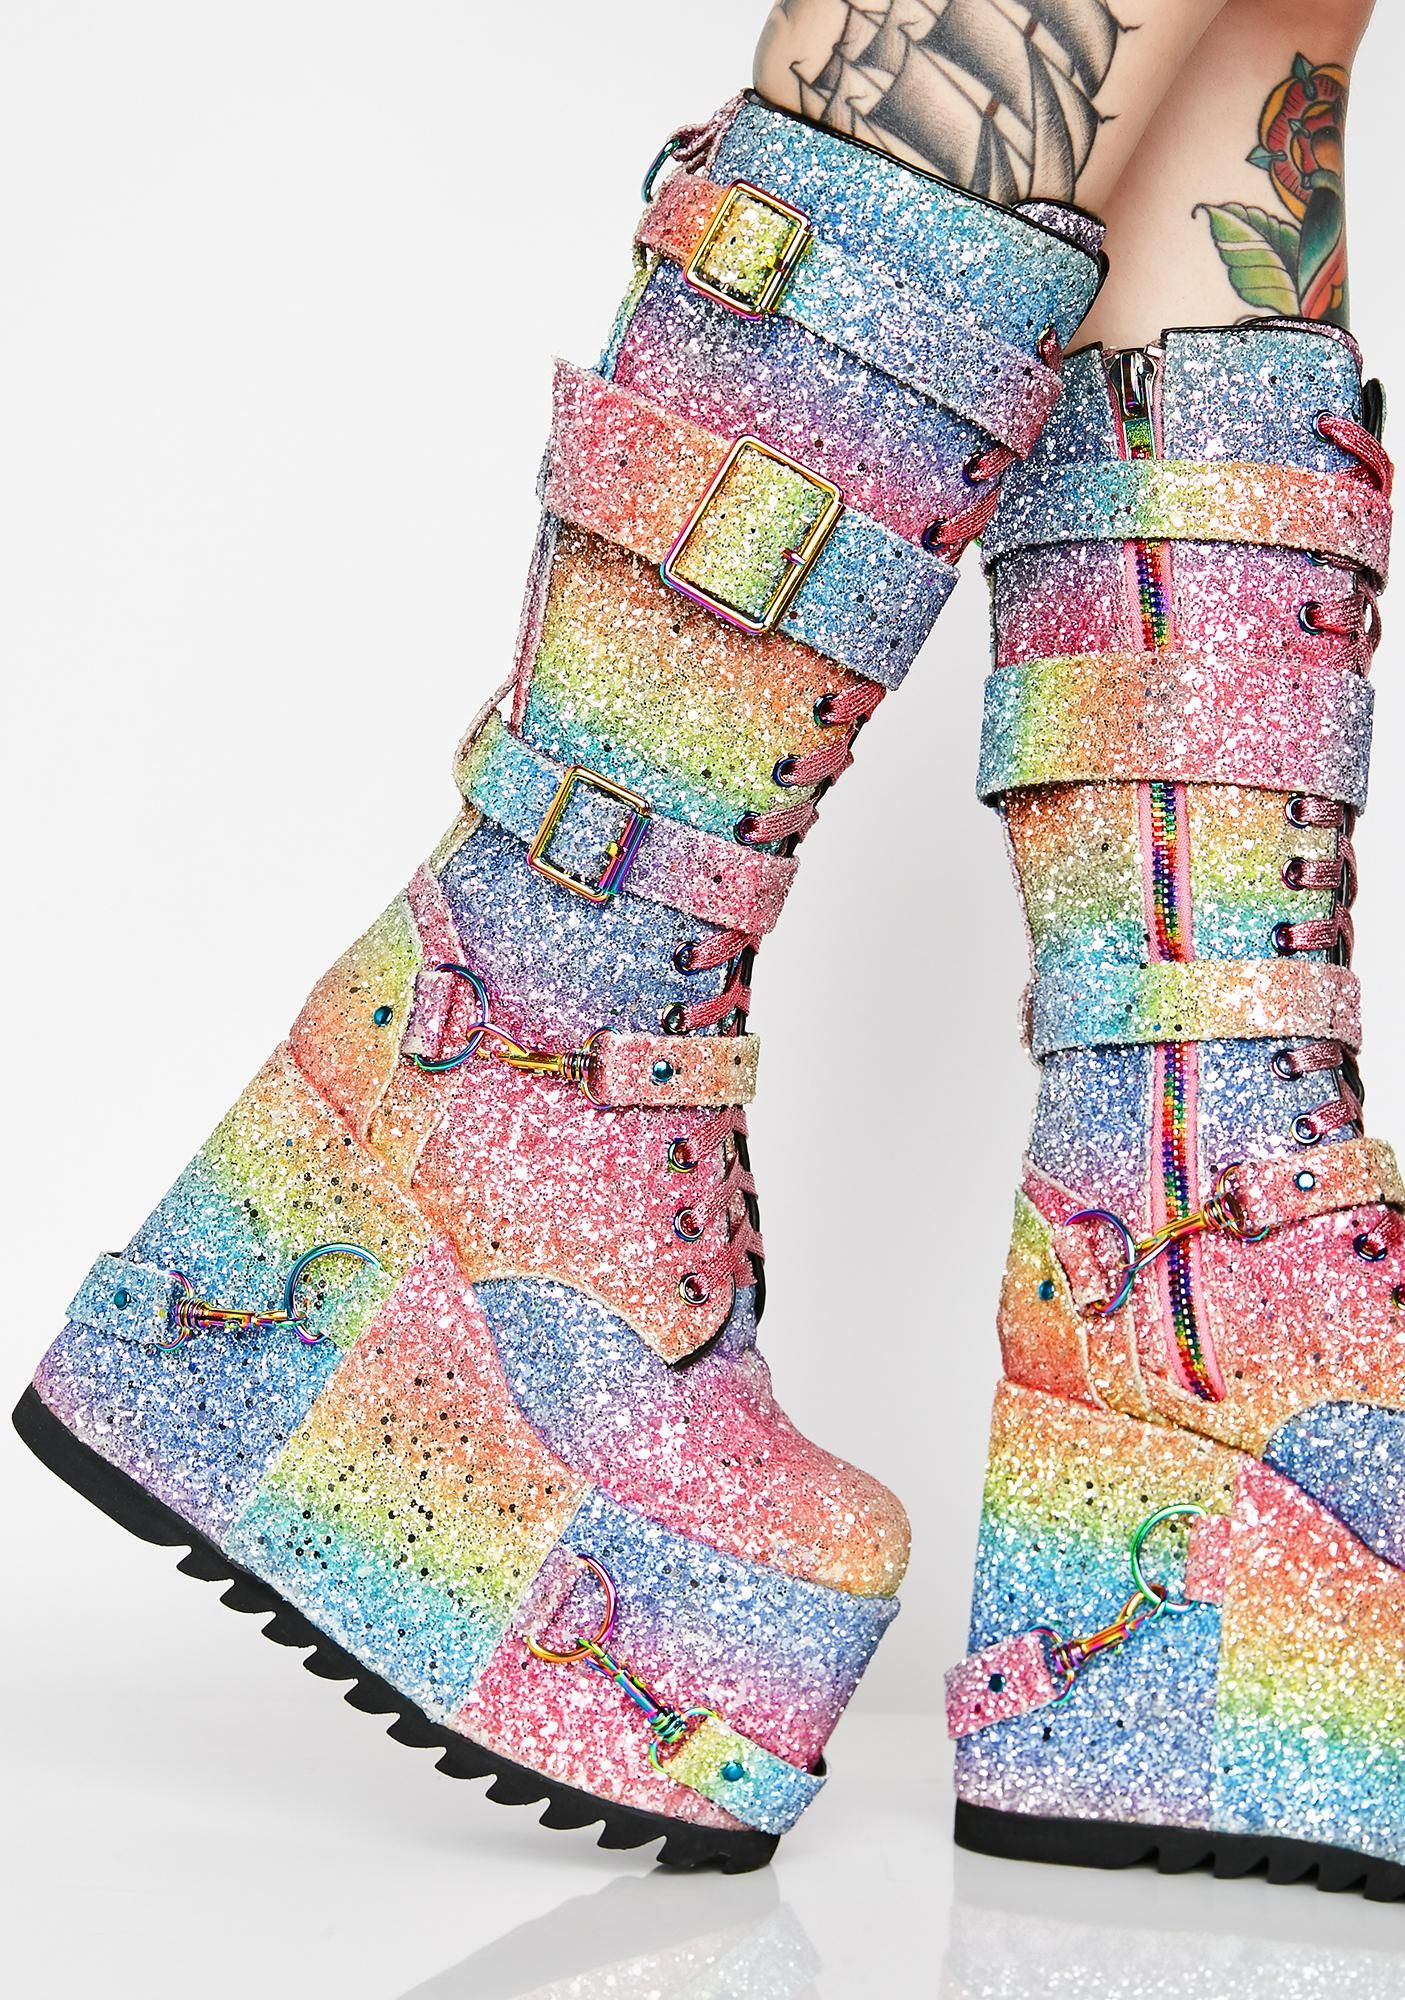 3823c135c4e Club Exx Sparkle Pony Platform Boots will have ya ridin  sky high on  magical bae bliss! Get to twerk in these glittery dream lace-up boots that  have rainbow ...